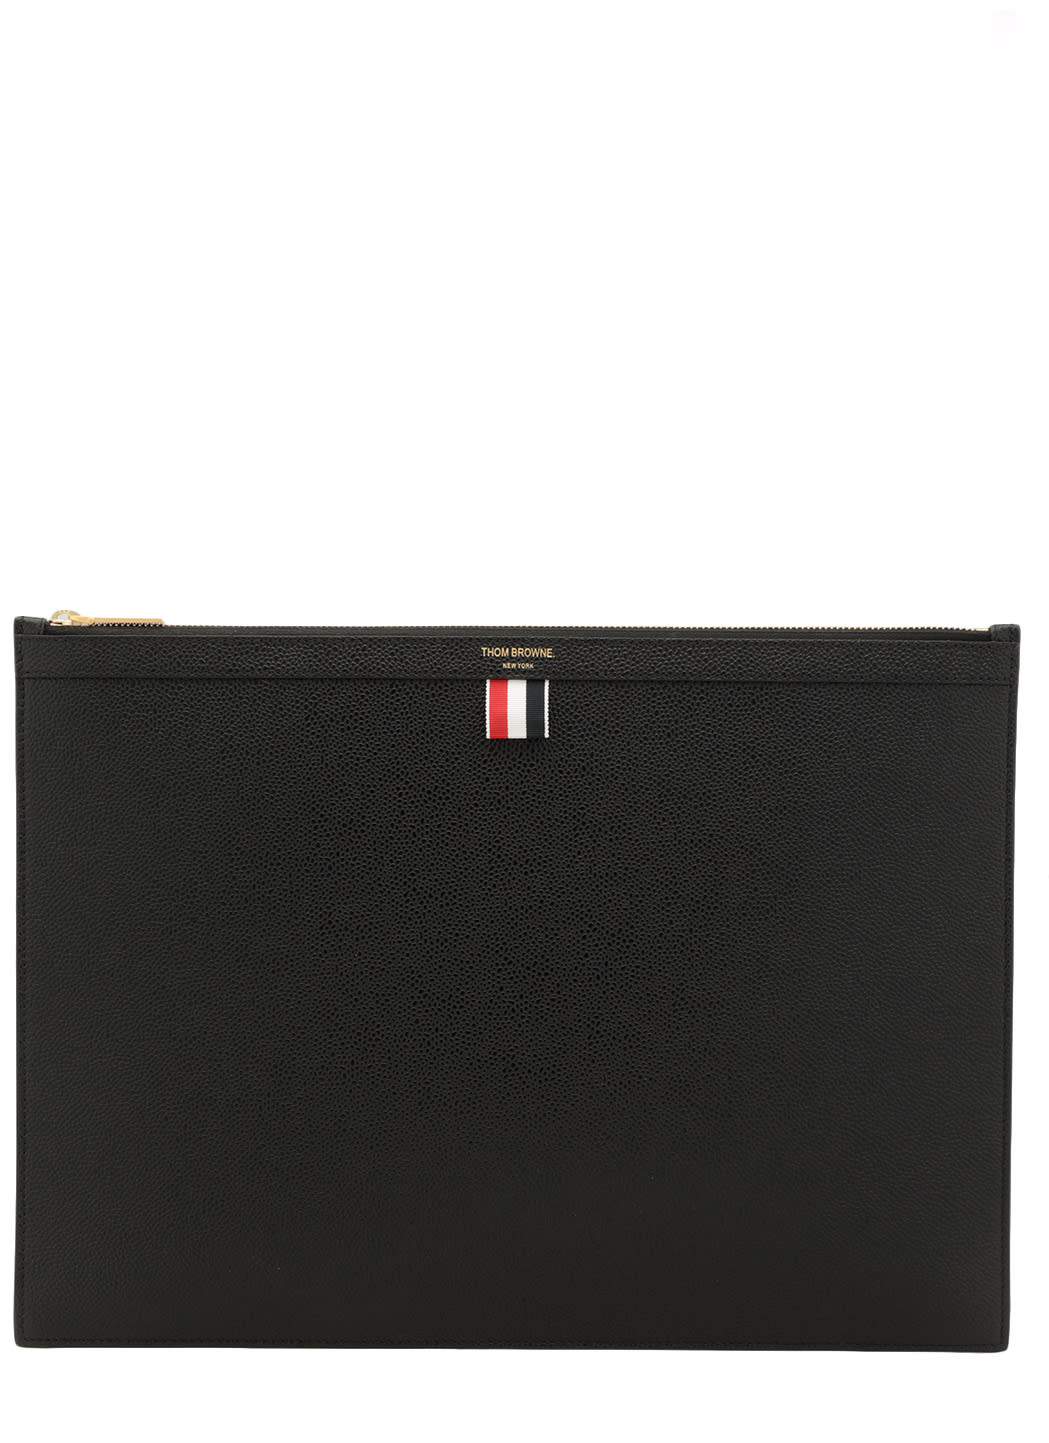 Thom Browne PEBBLED LEATHER DOCUMENT HOLDER